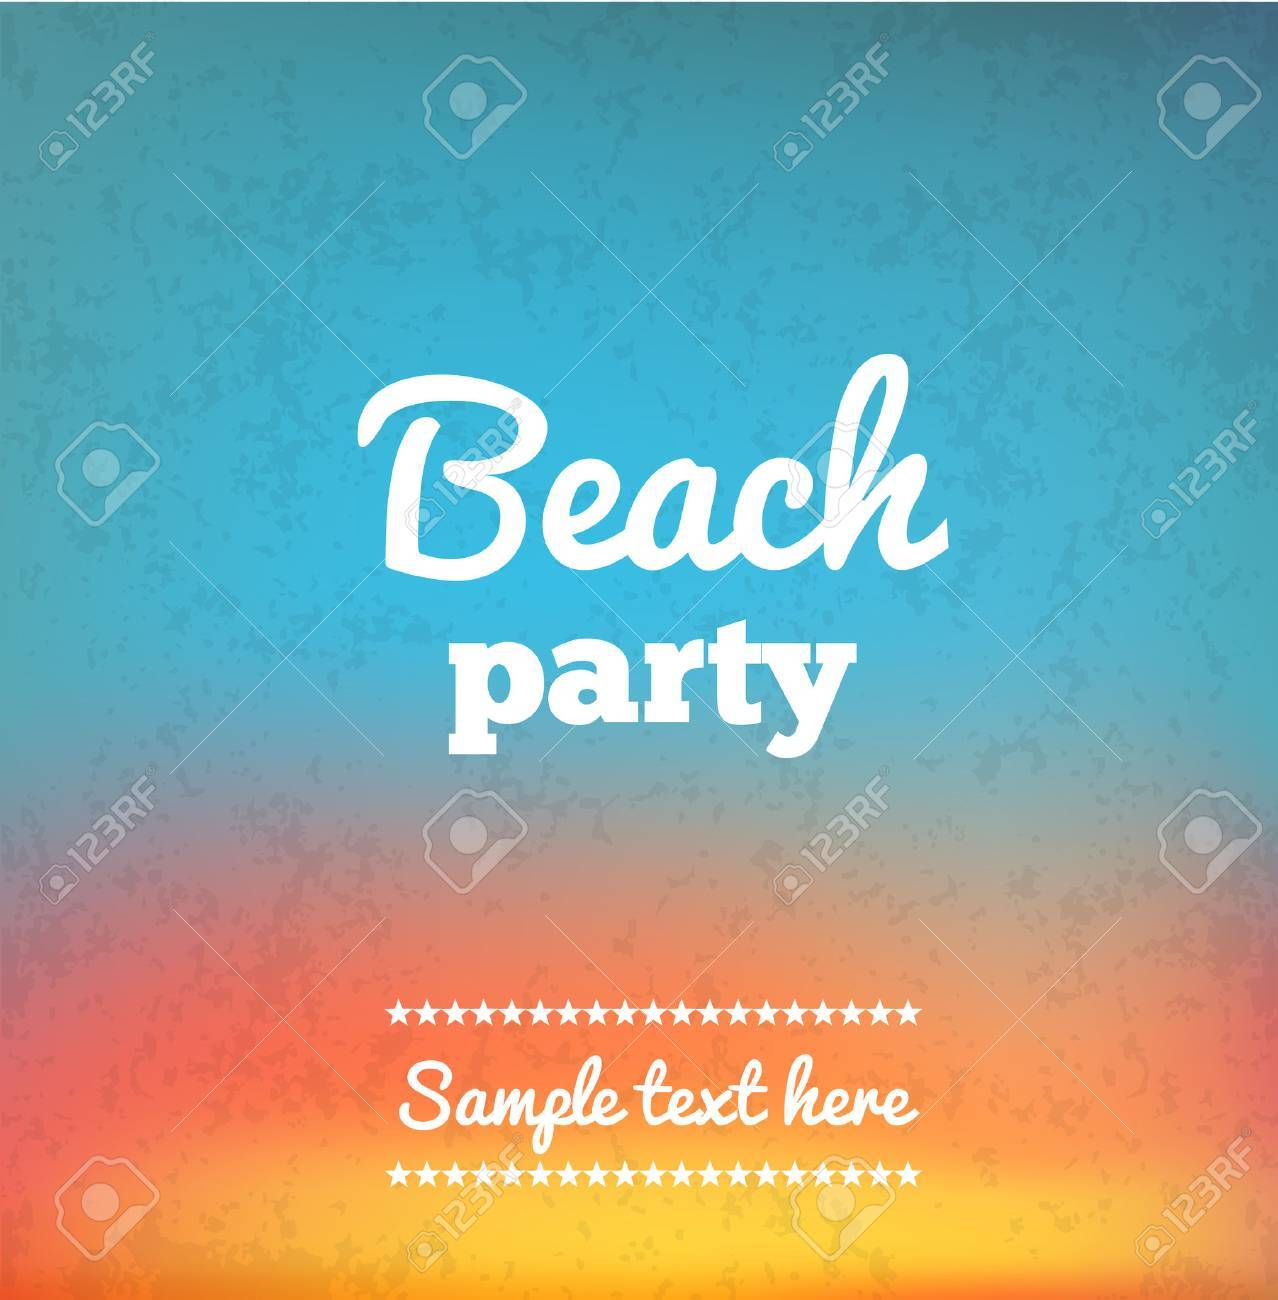 Illustartion of Beach Party Flye with place for text - 50353870